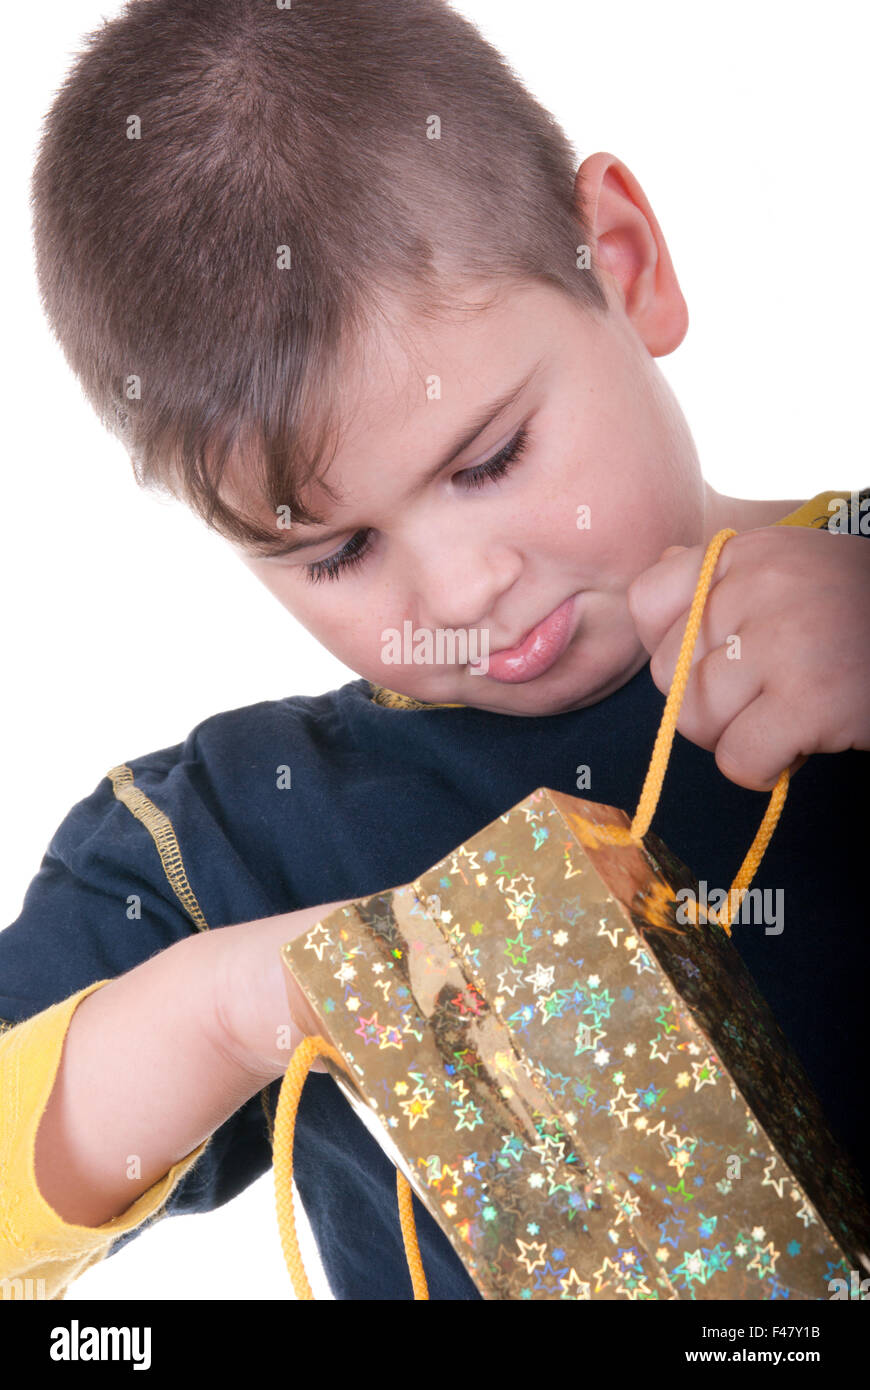 Boy searches for a gift - Stock Image